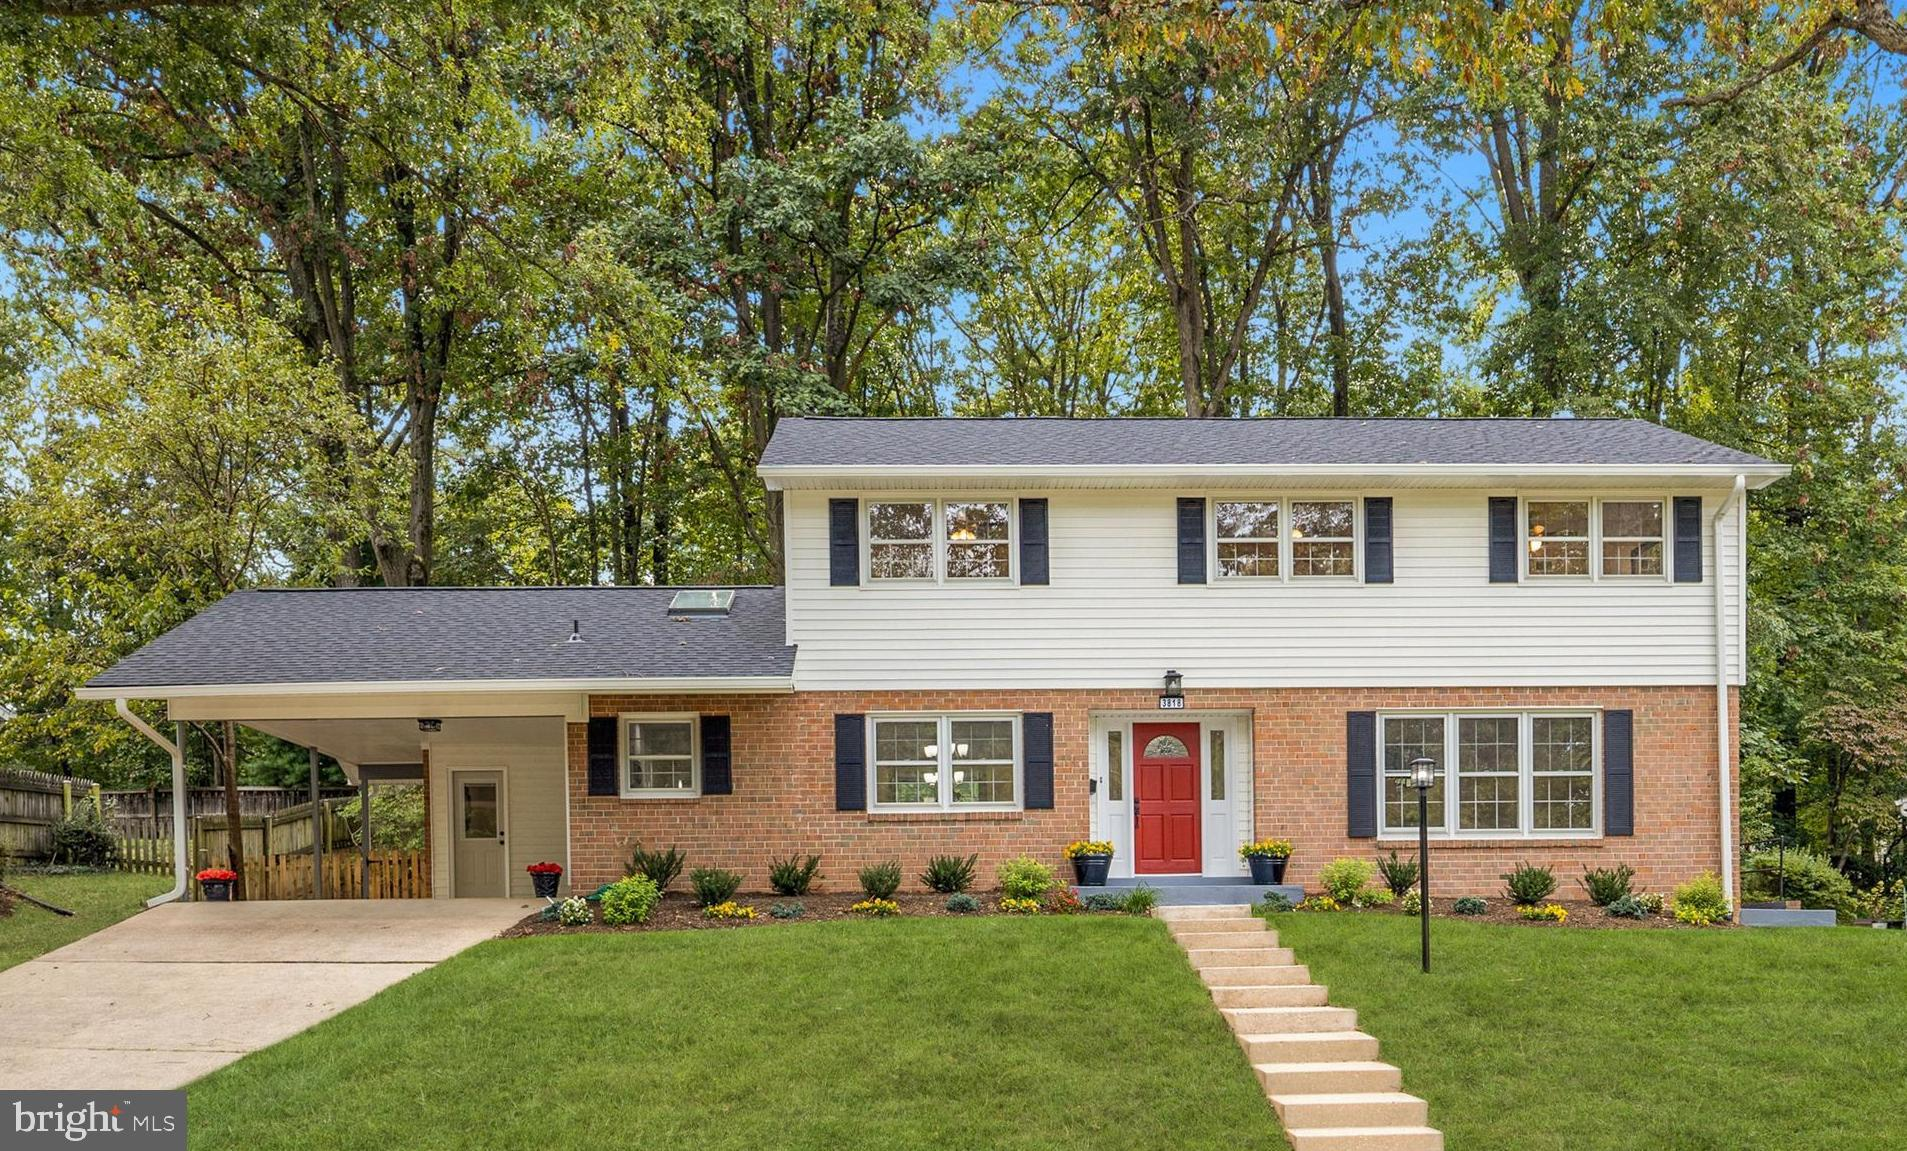 Stunning 5 bedroom 3 bath colonial renovation offering the finest in design. detail and craftsmanshi